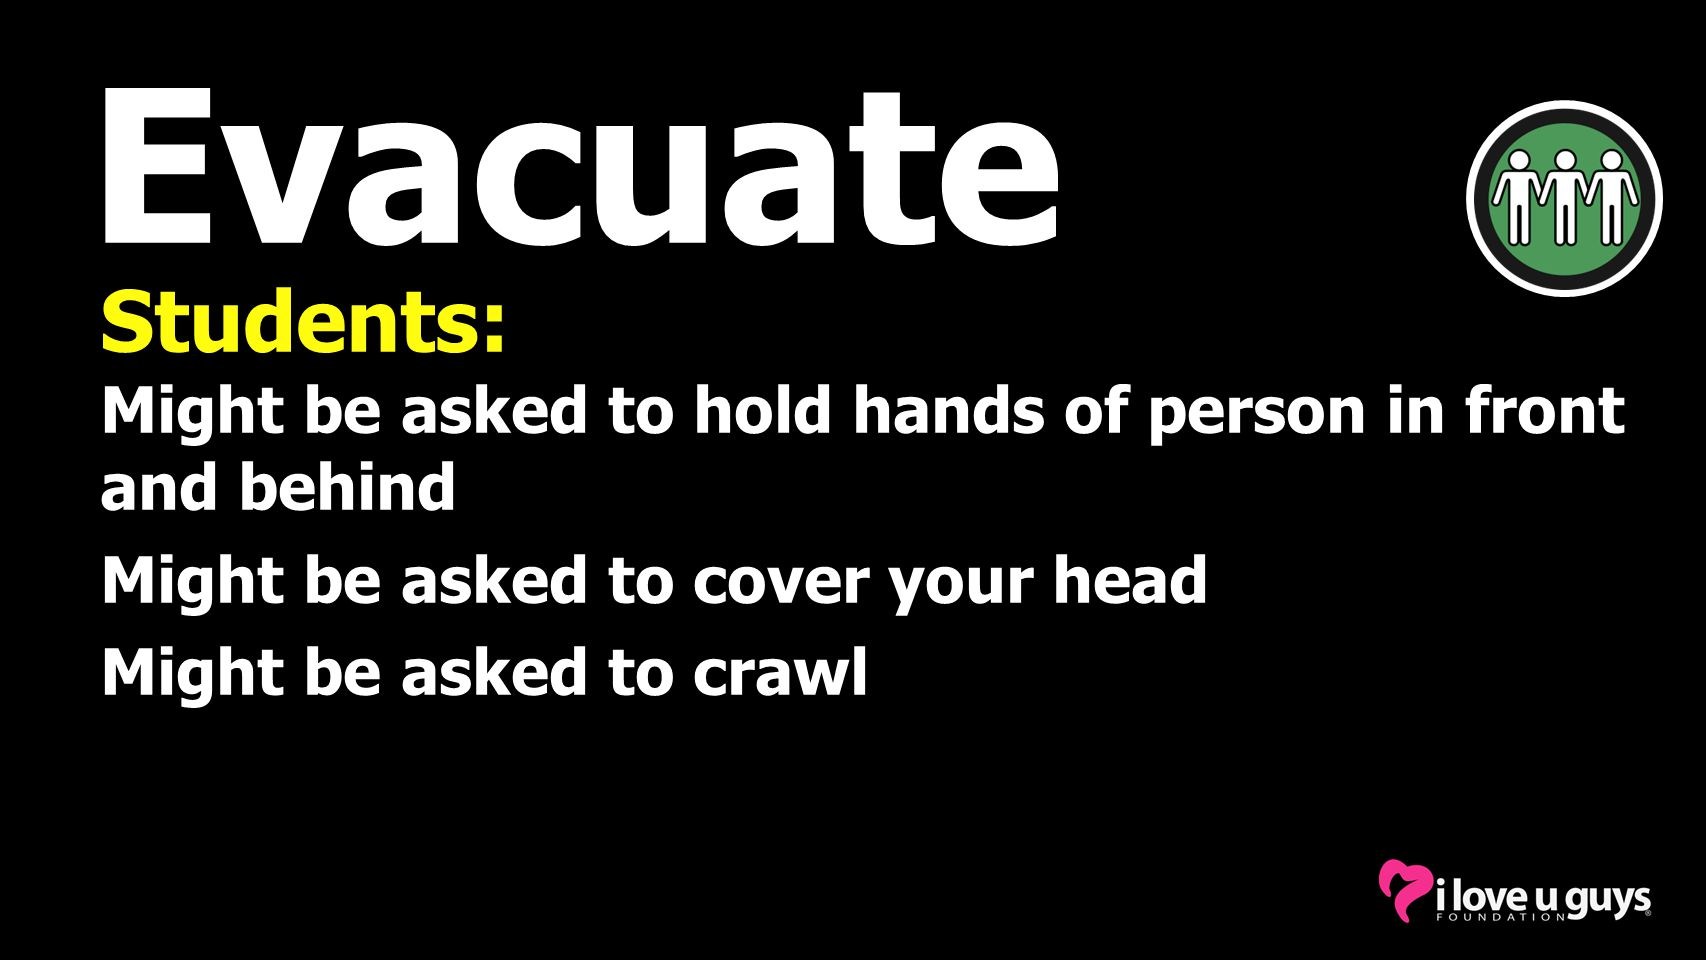 Evacuate Students: Might be asked to hold hands of person in front and behind. Might be asked to cover your head.